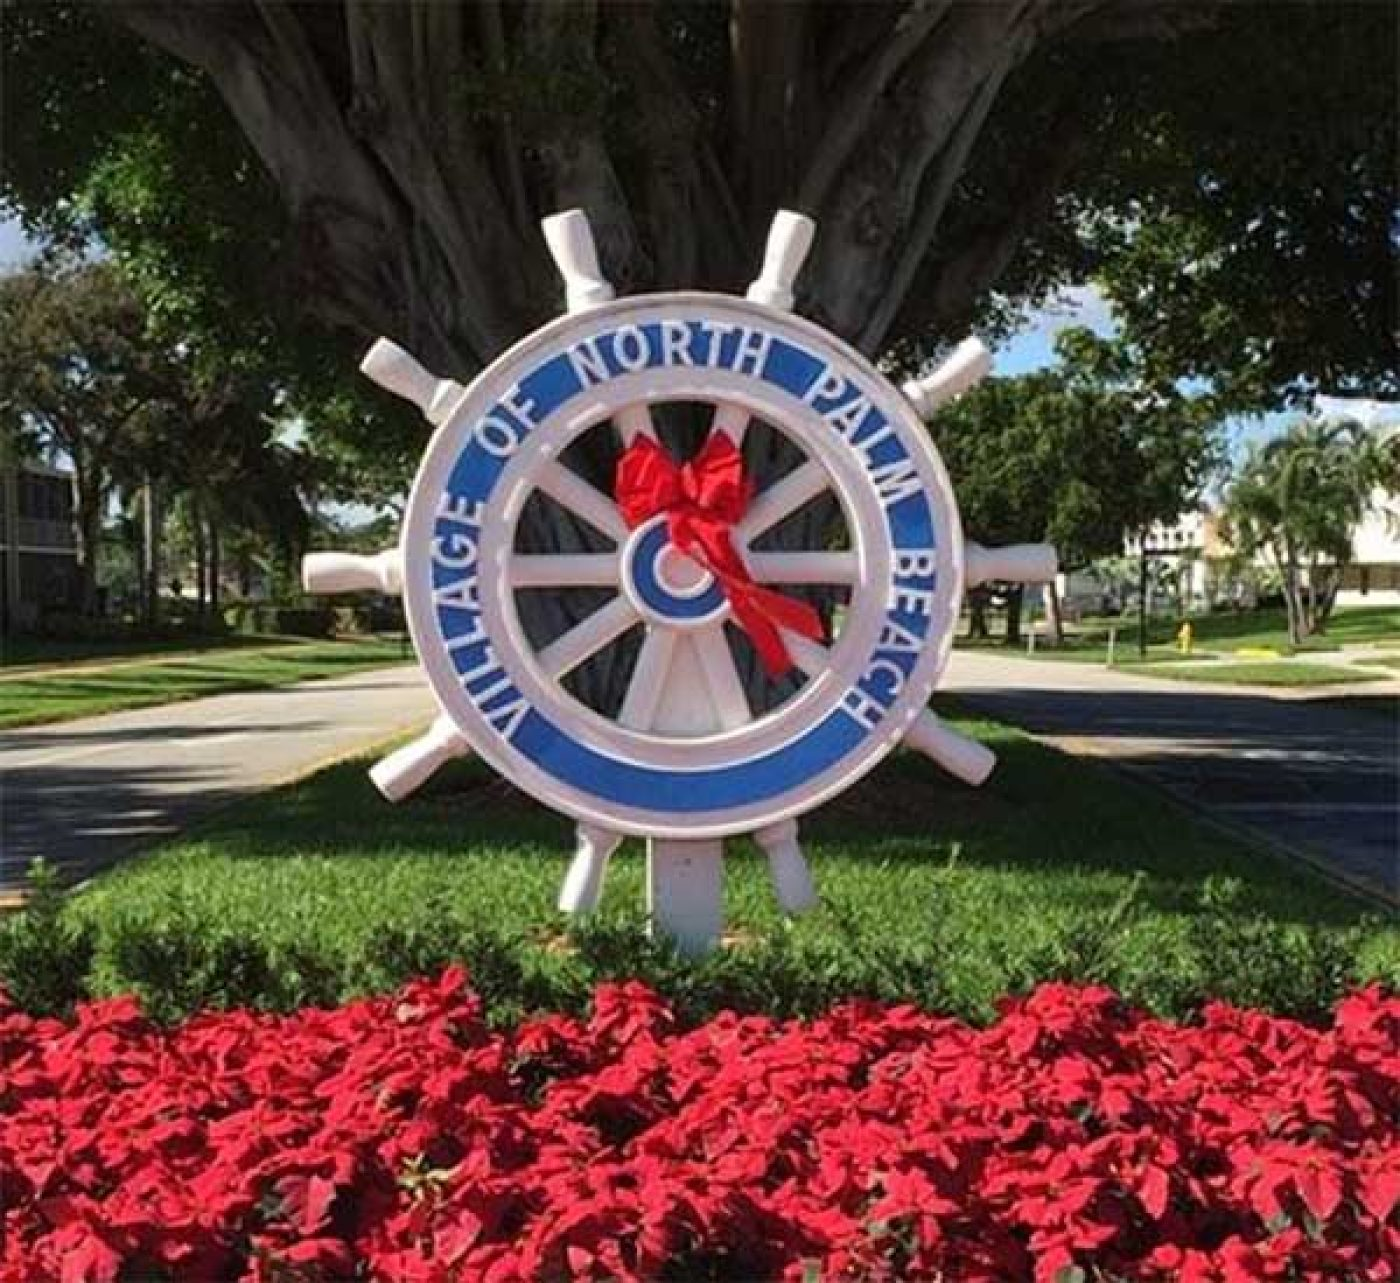 North Palm Beach Village Logo FLowers FLPalmBeach Martin Group Real Estate Image